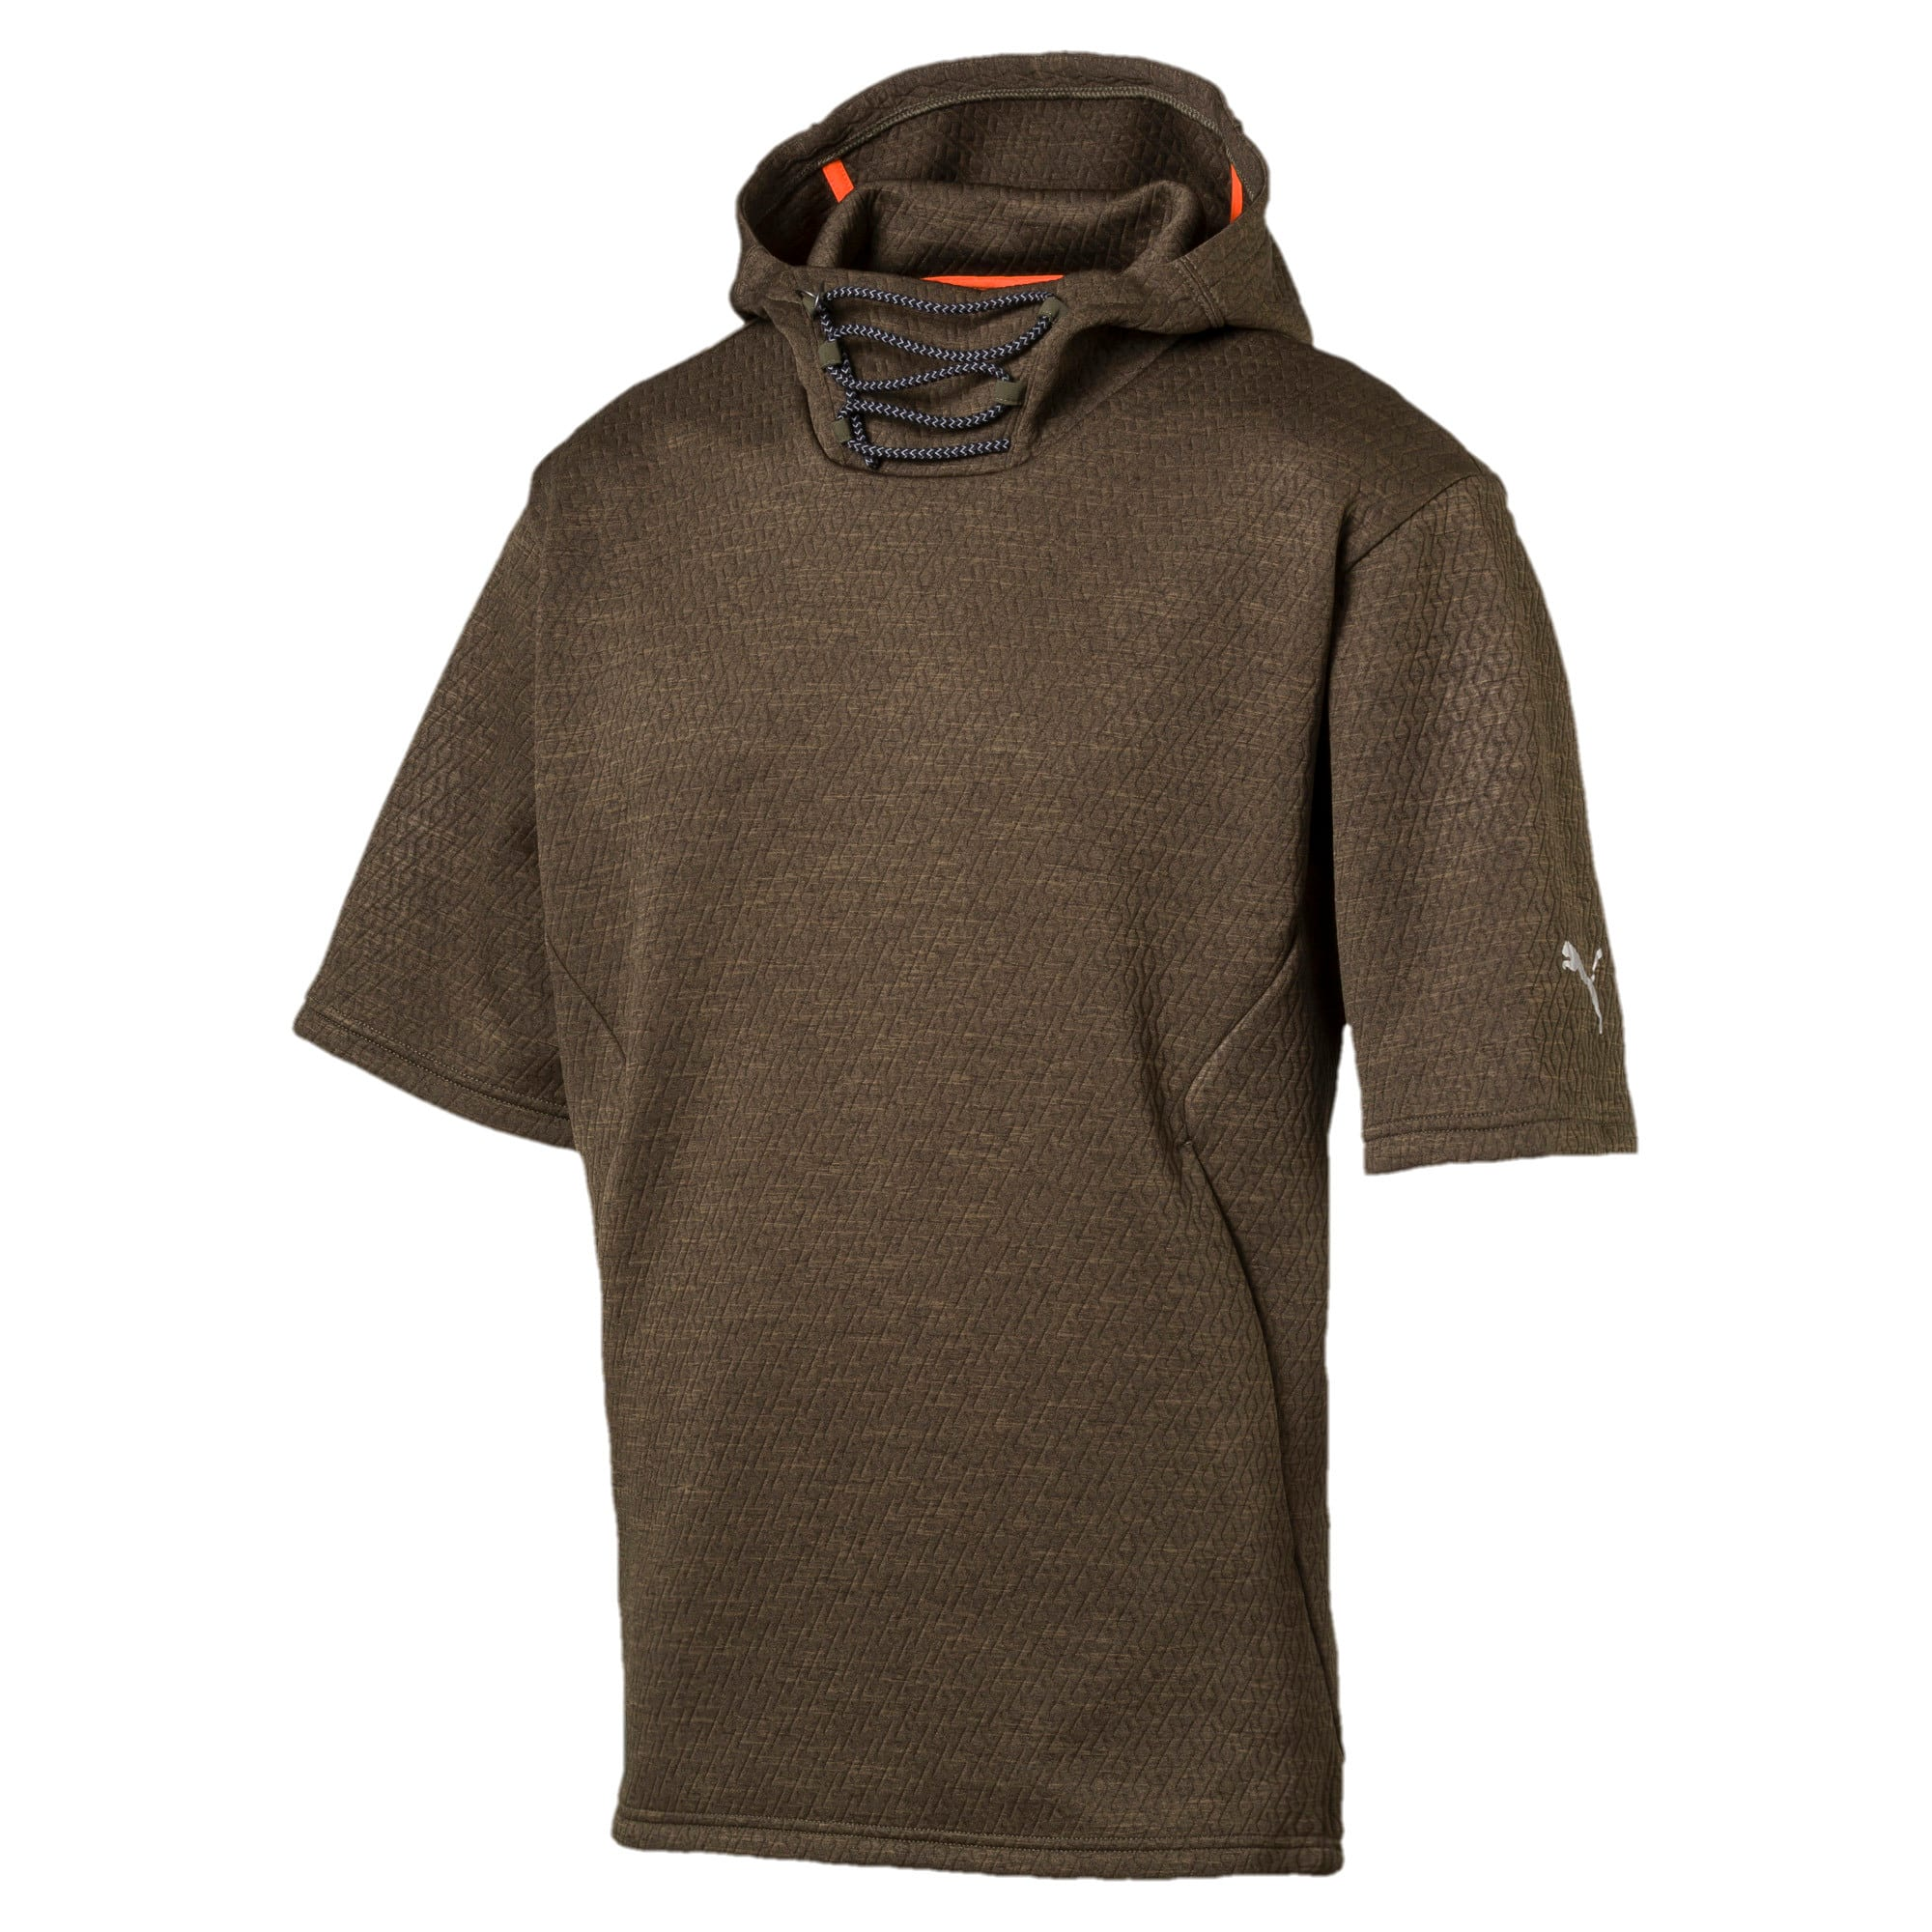 Thumbnail 1 of Training Men's Energy Short Sleeve Hoodie, Forest Night Heather, medium